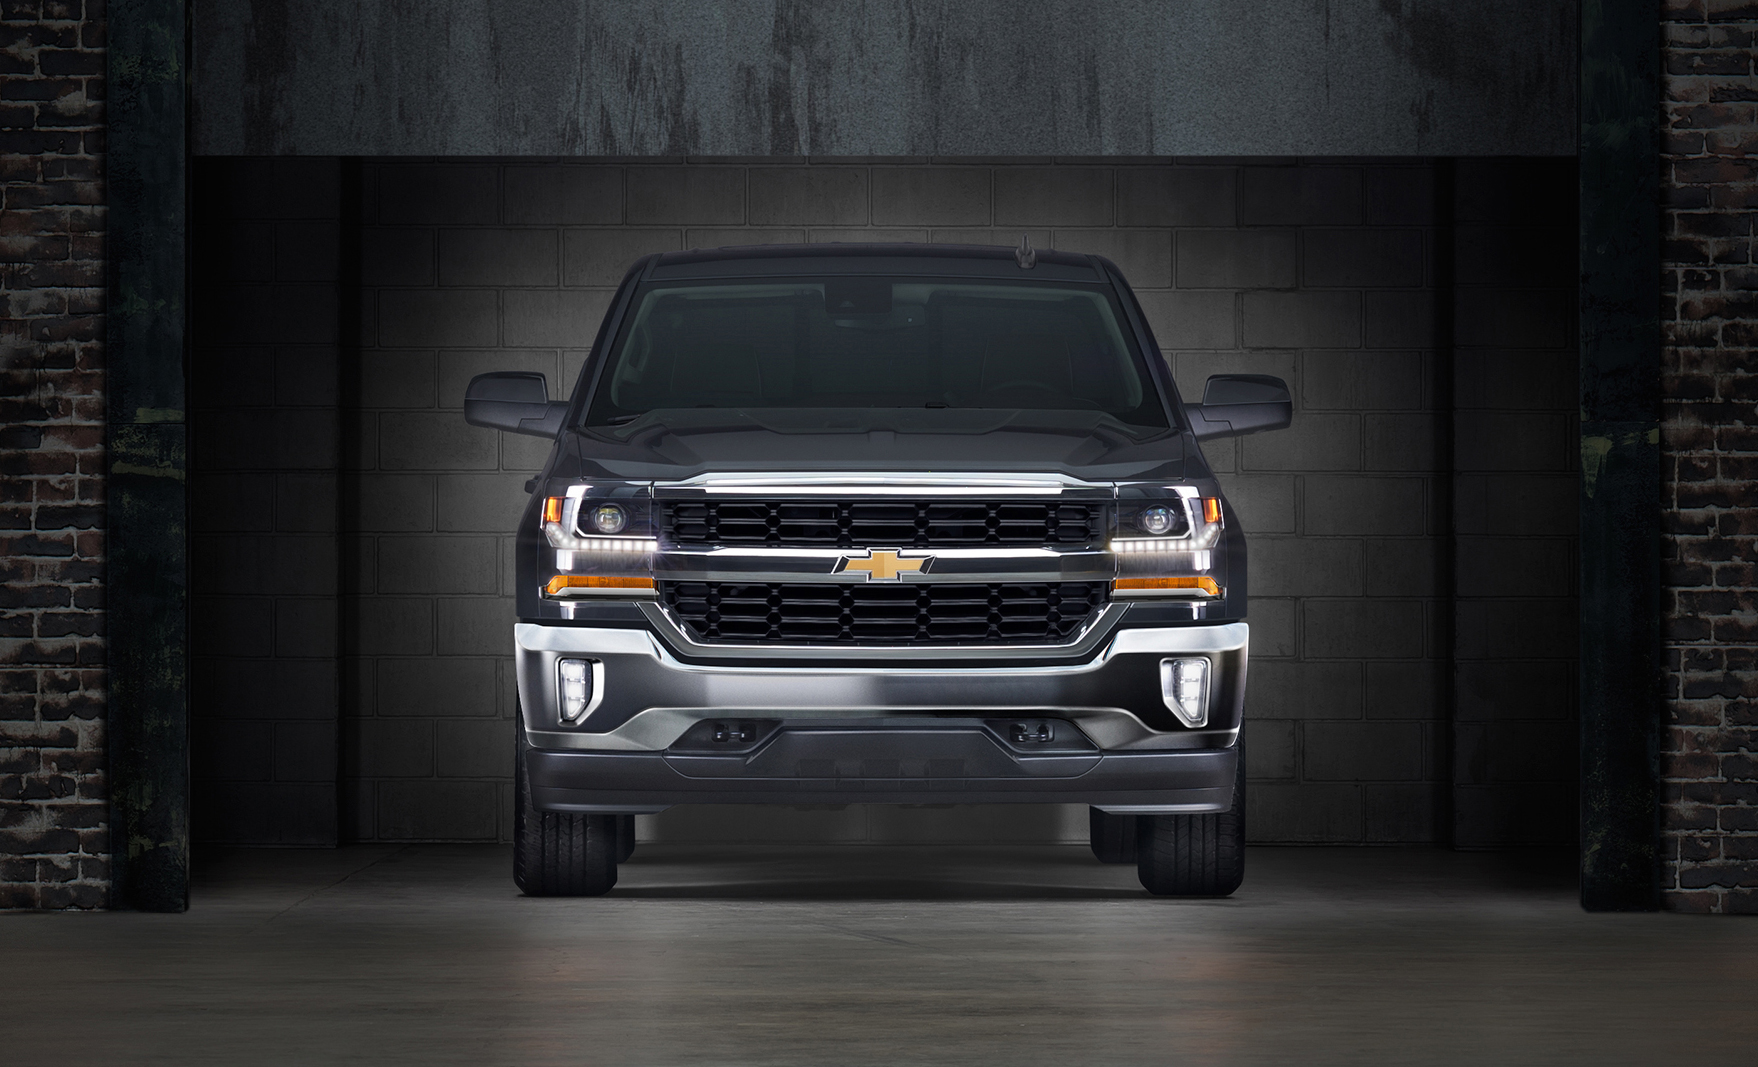 detail realtree edition silverado media introduces pages jan us vehicles chevrolet content truck news en